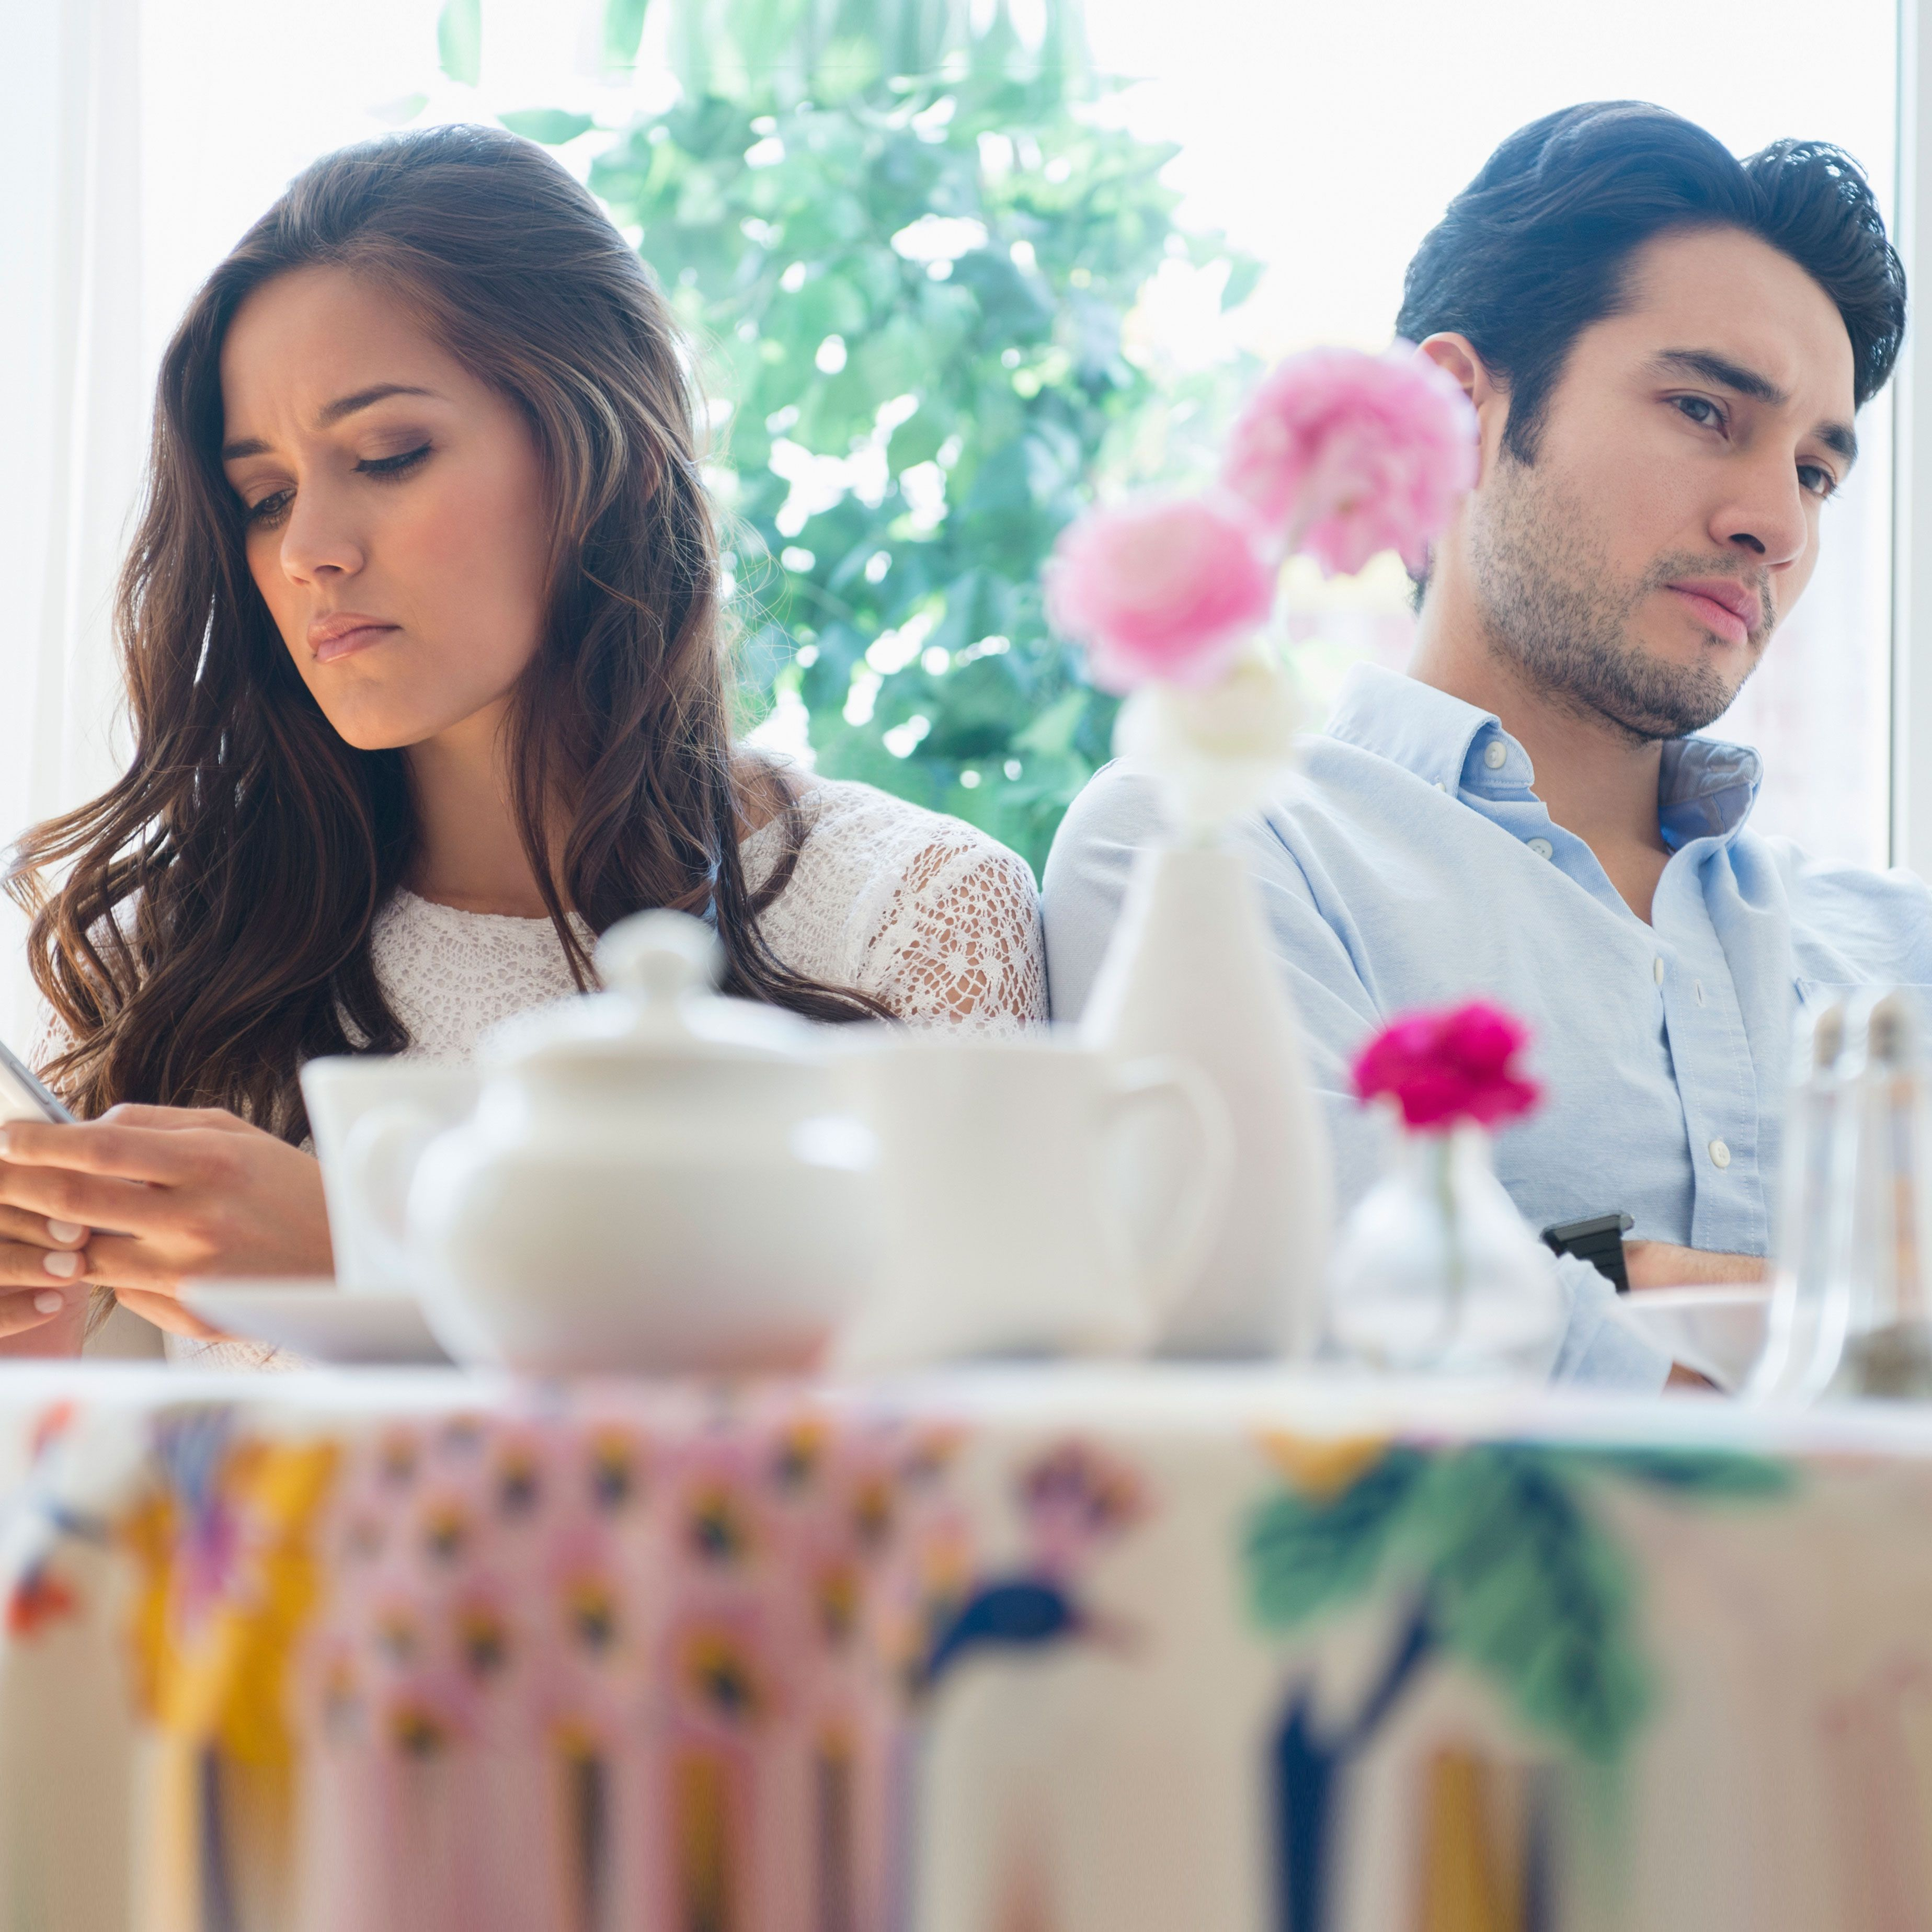 33 Relationship Problems and How to Fix Them - How to